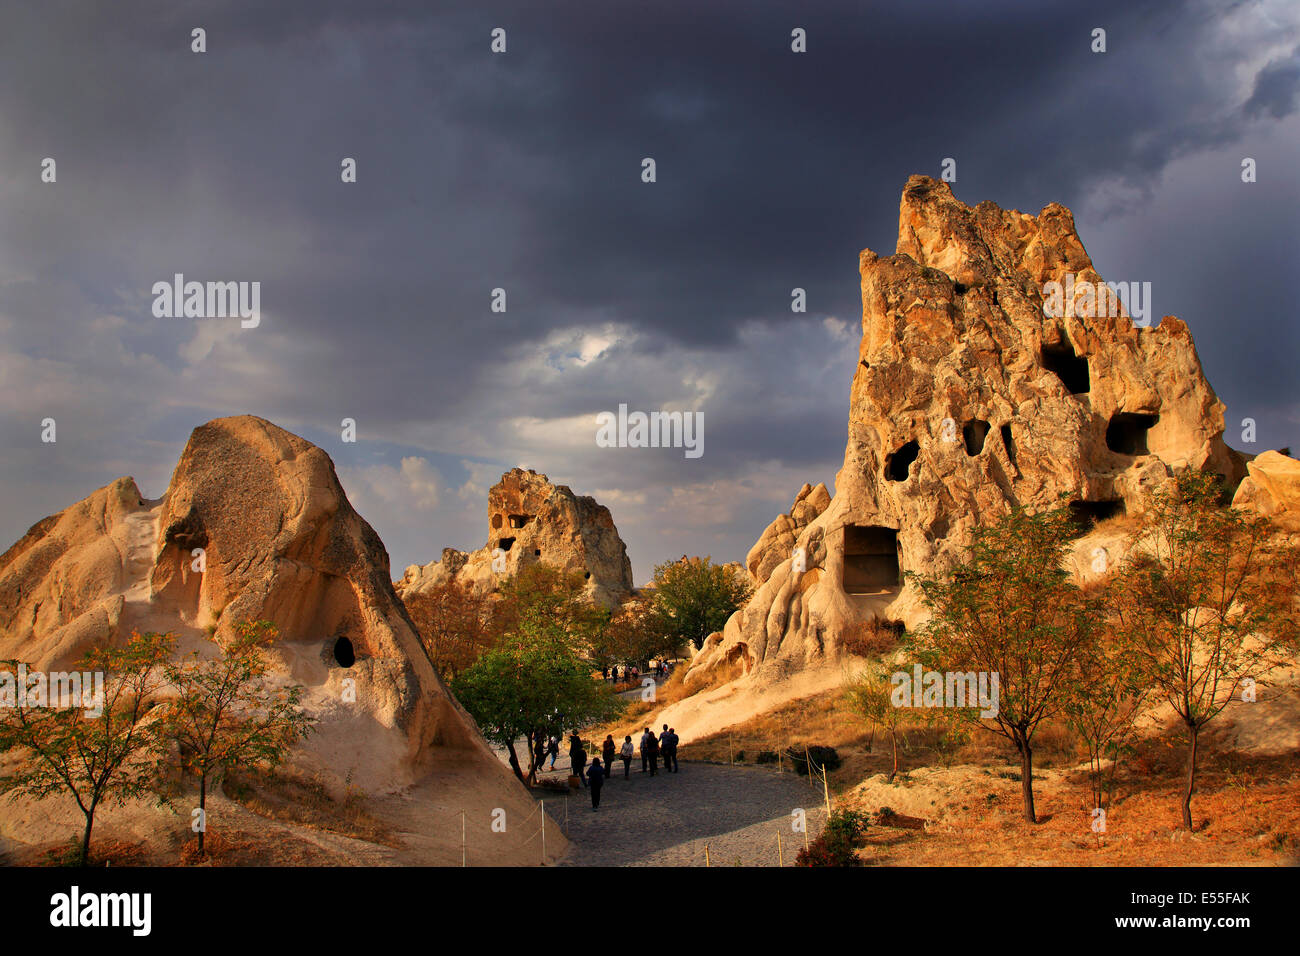 Small part  of Goreme Open Air Museum and National Park with some rock cut monasteries. Nevsehir, Cappadocia, Turkey. - Stock Image